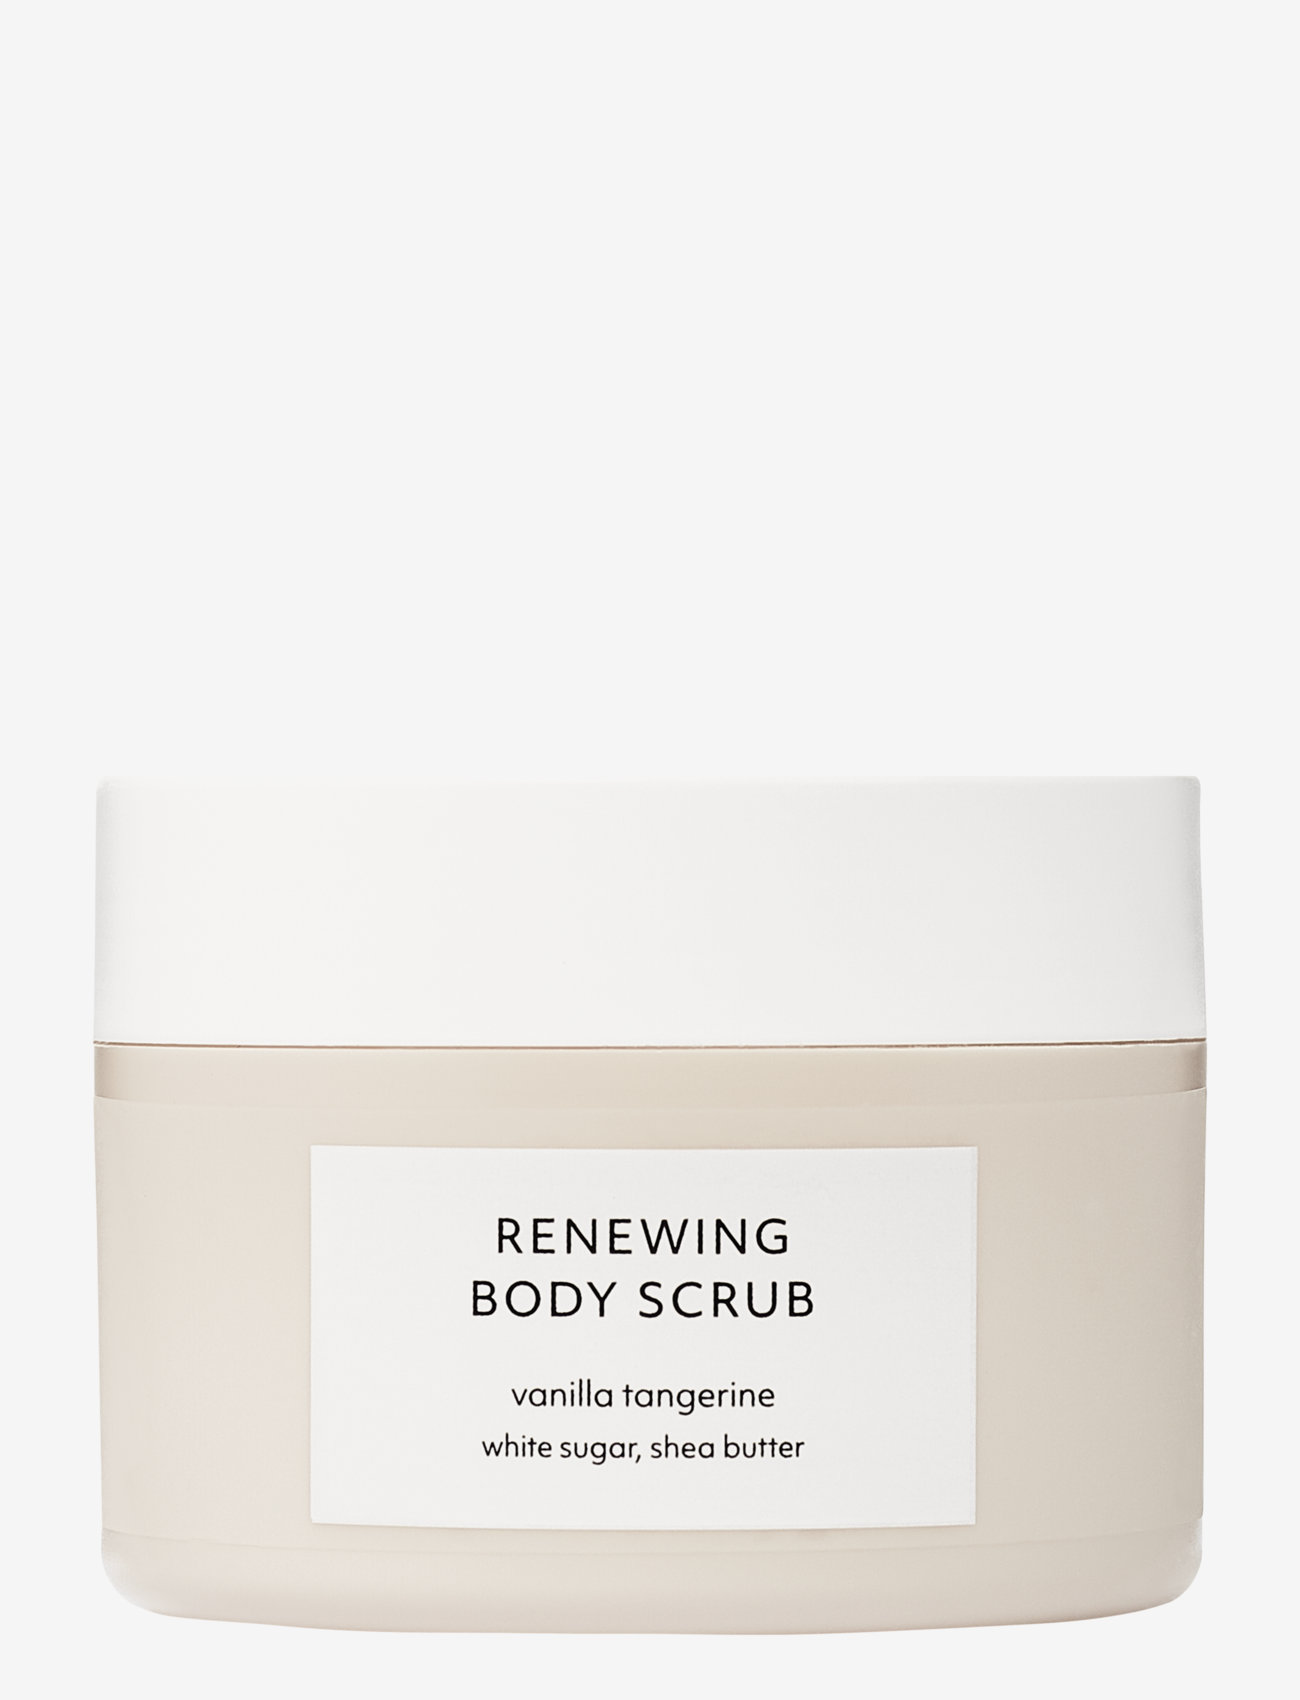 Estelle & Thild - Vanilla Tangerine Renewing Body Scrub - kuorinta - no colour - 0